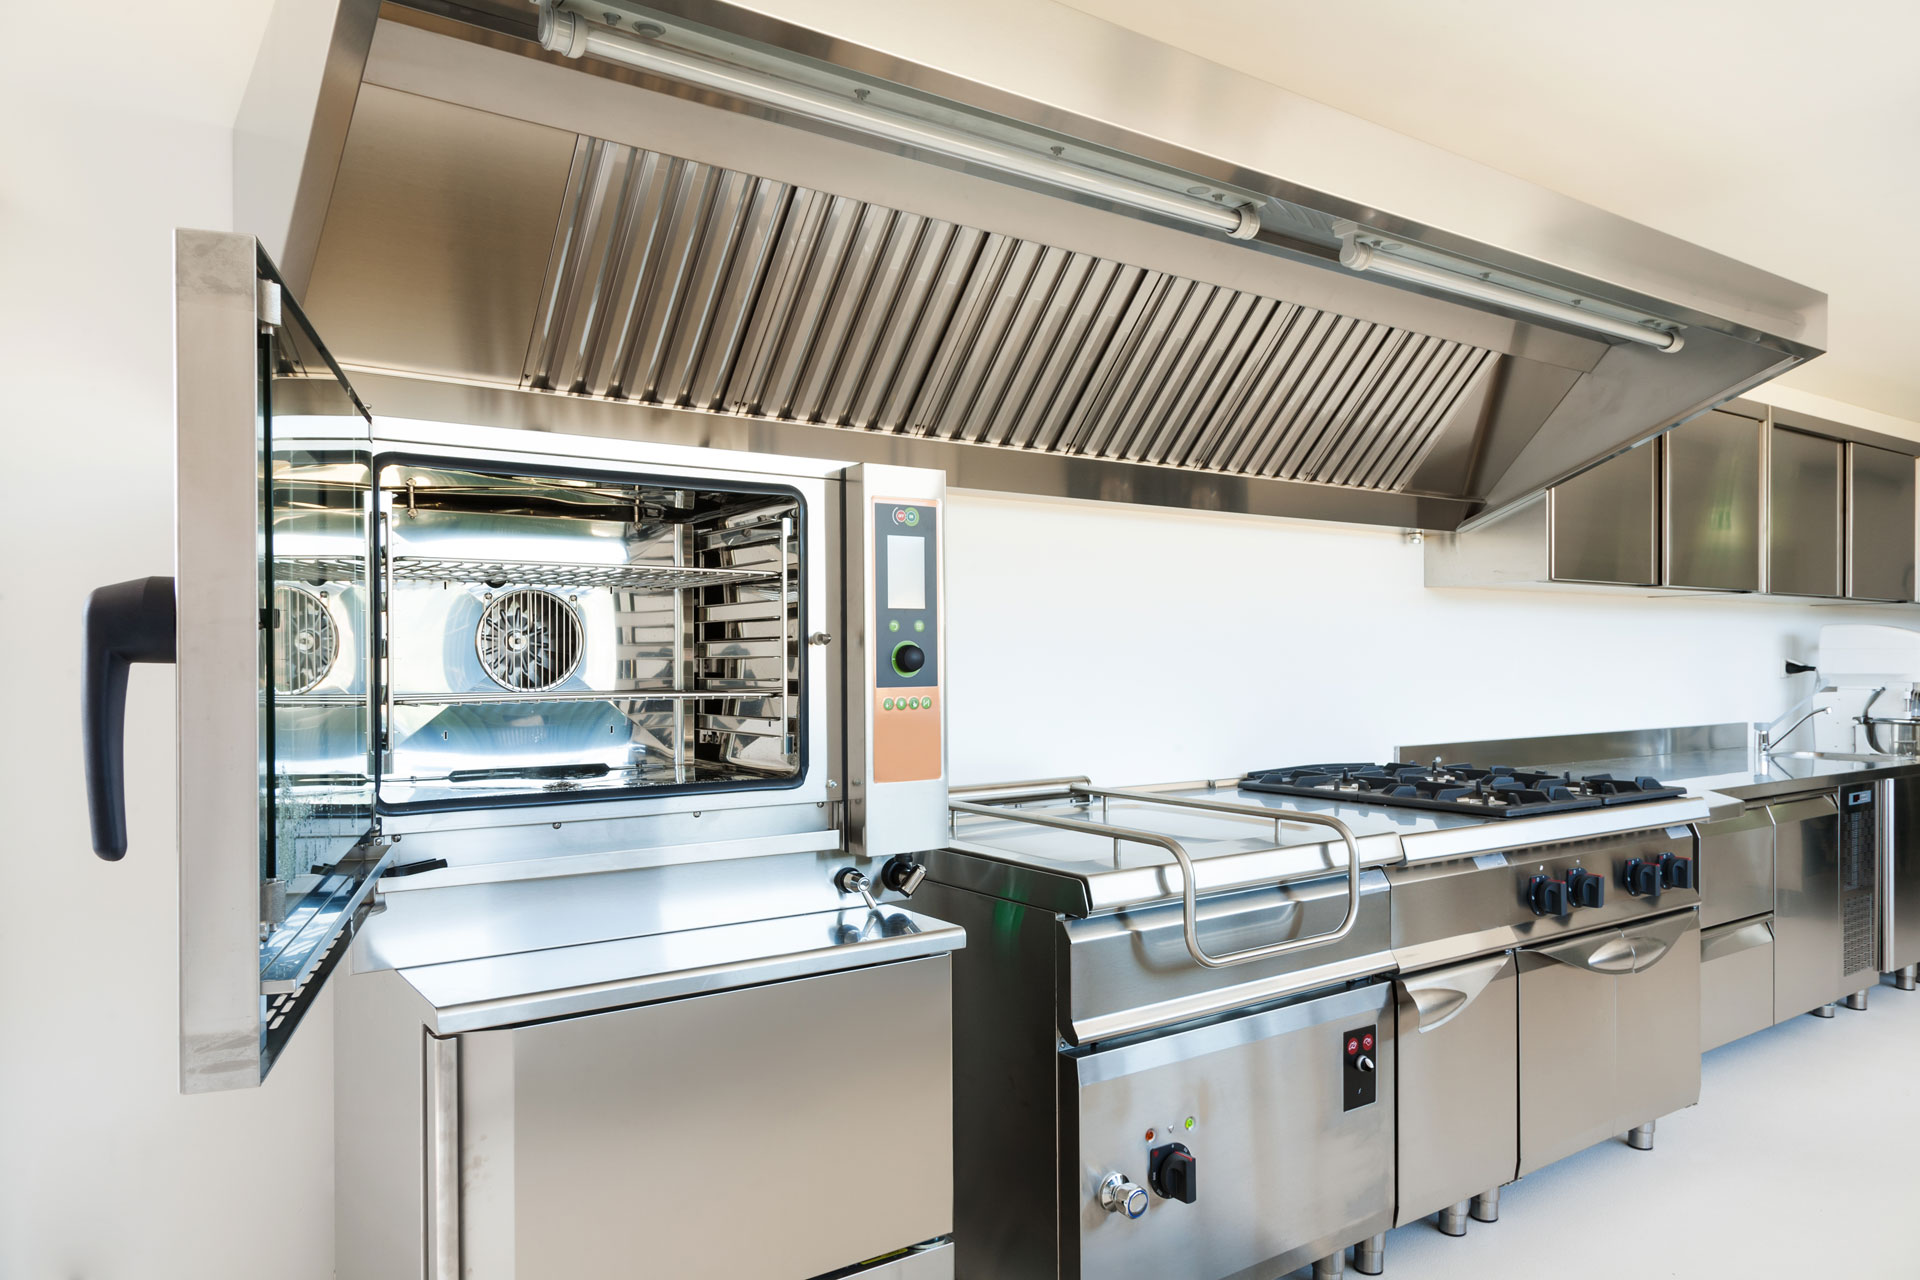 How To Properly Maintain Your Business's Oven